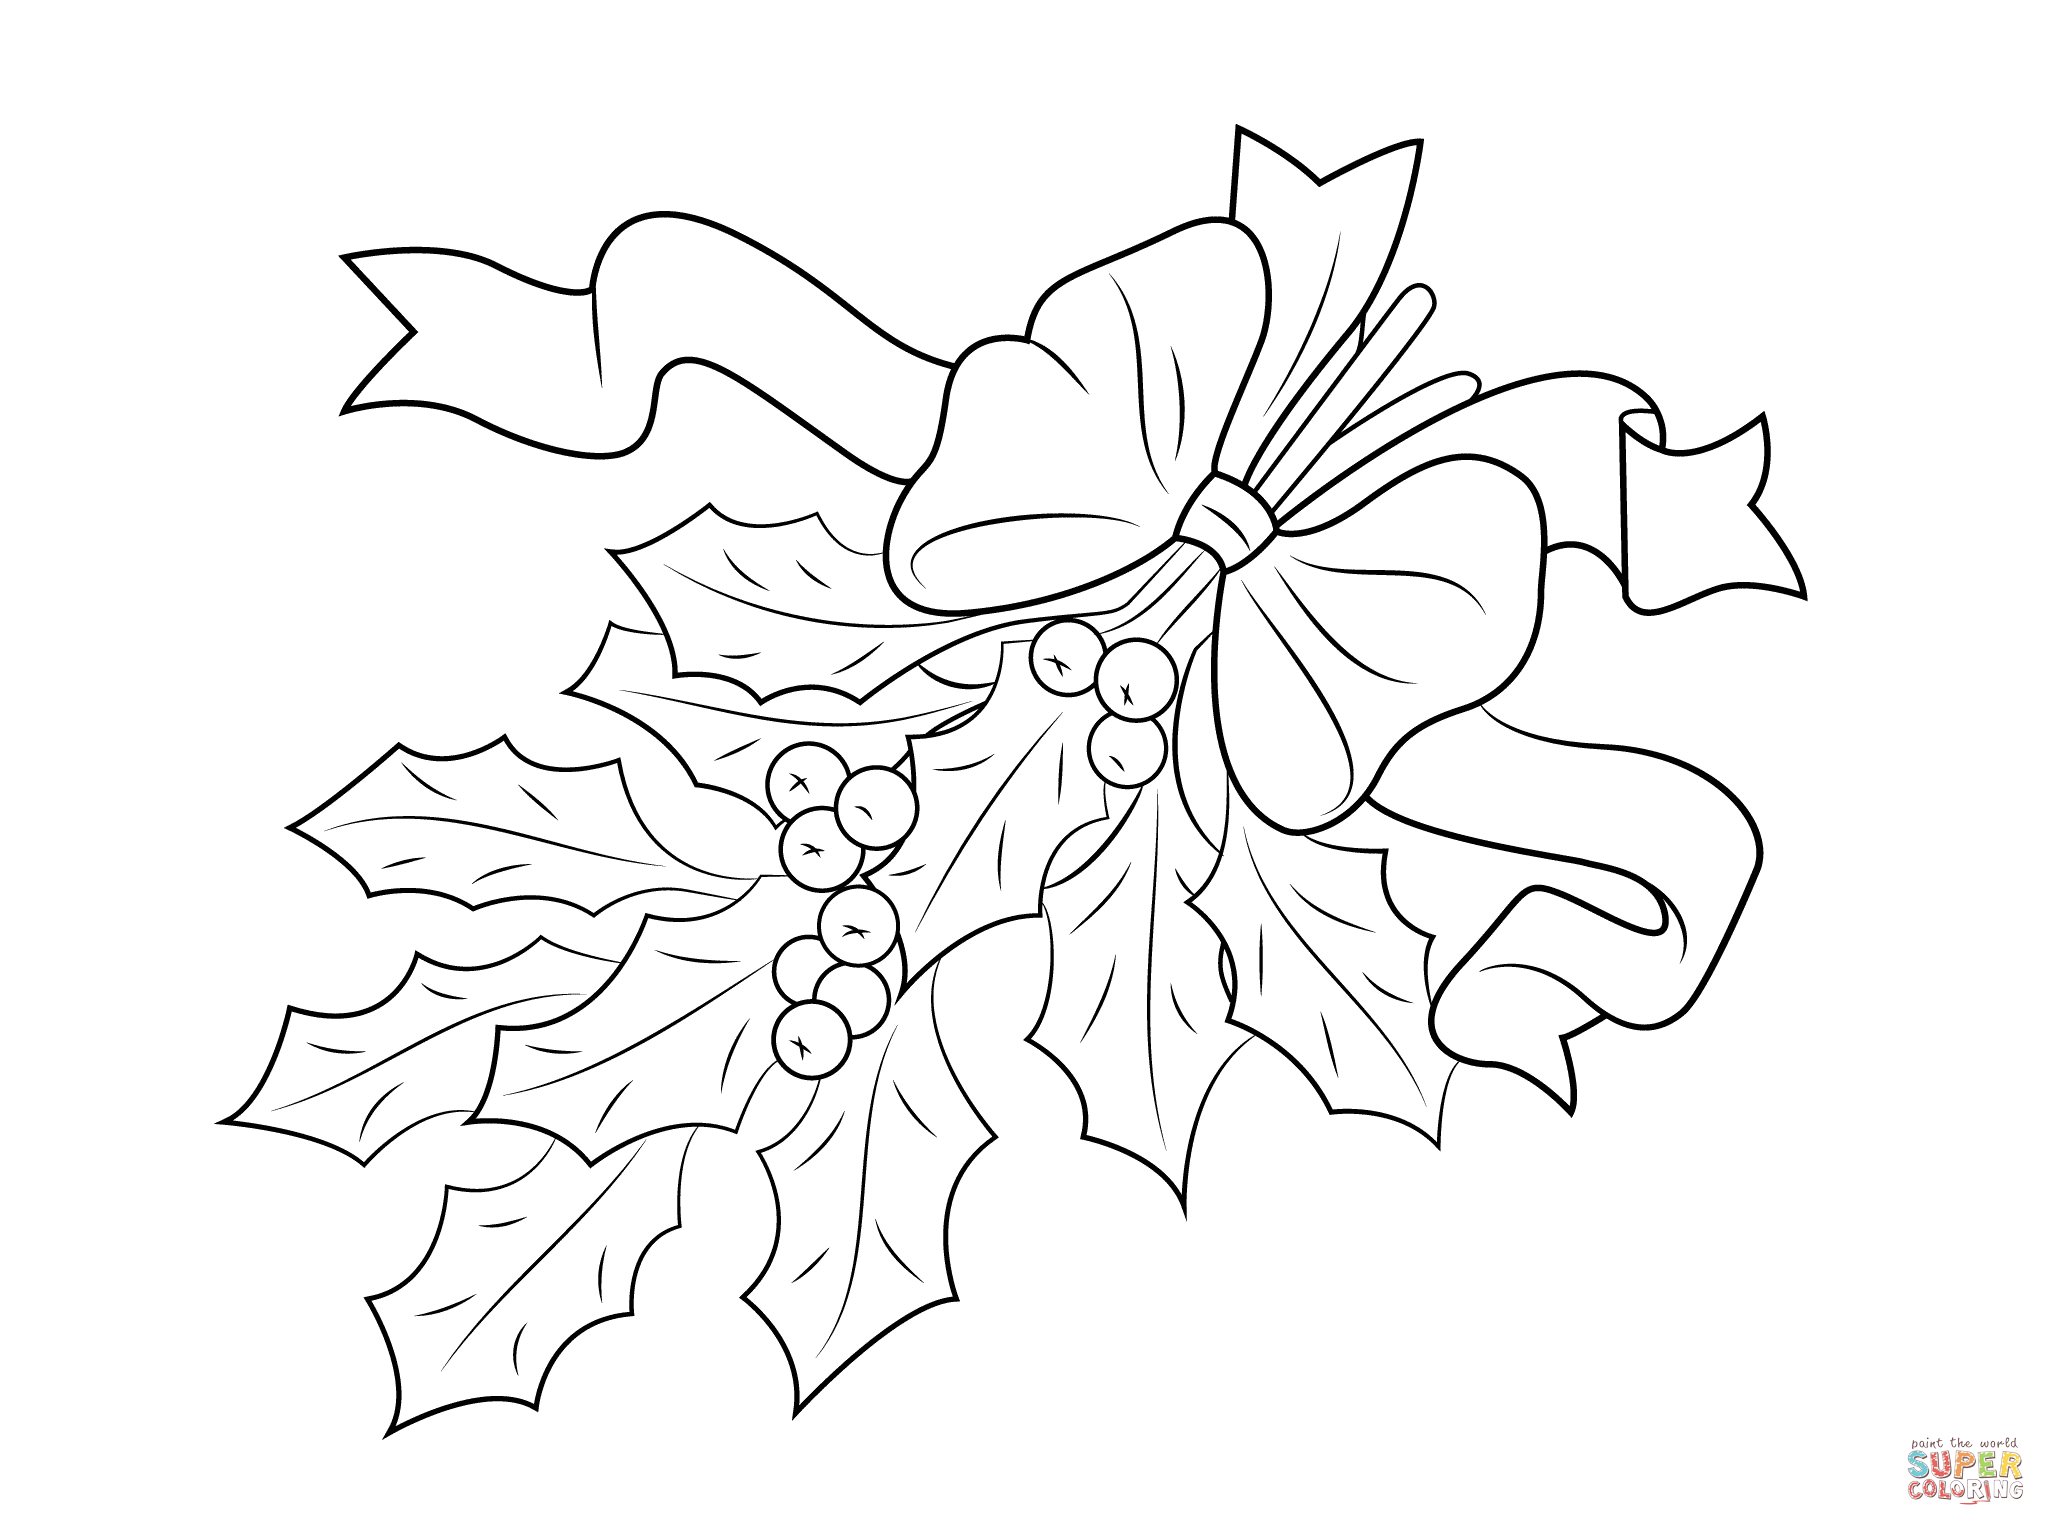 Adult Cute Holly Coloring Page Gallery Images cute printable christmas holly coloring pages az with bow page free images